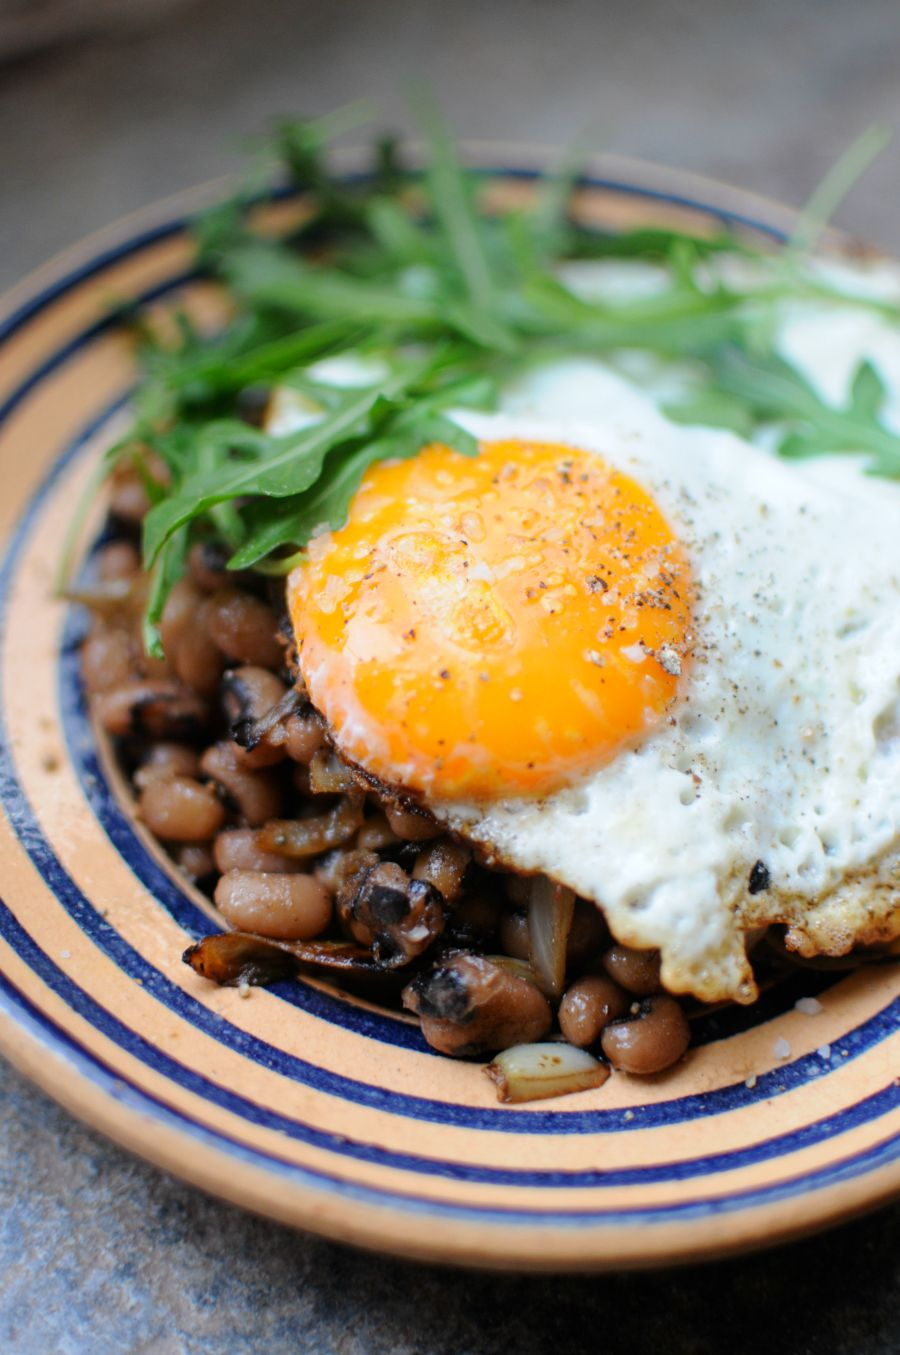 lentils and eggs